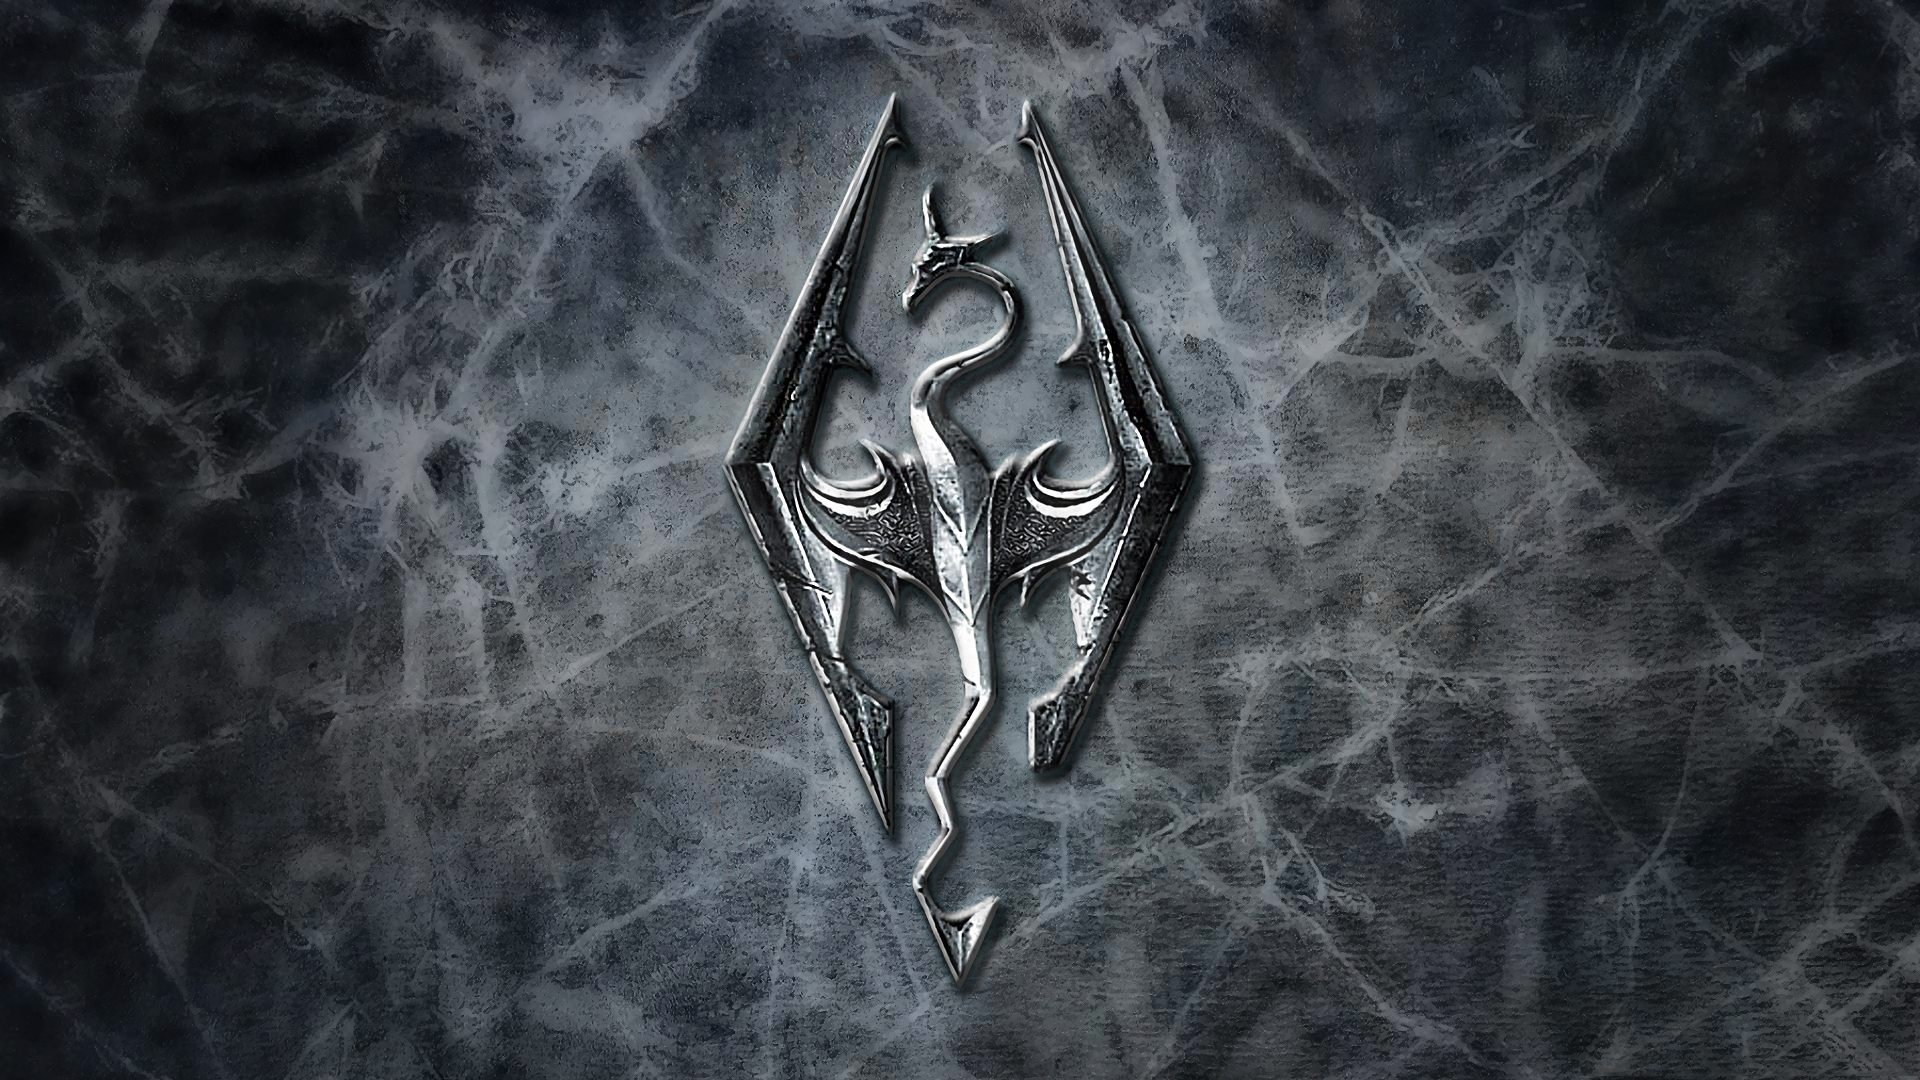 skyrim 1980 x 1040 wallpaper - photo #5